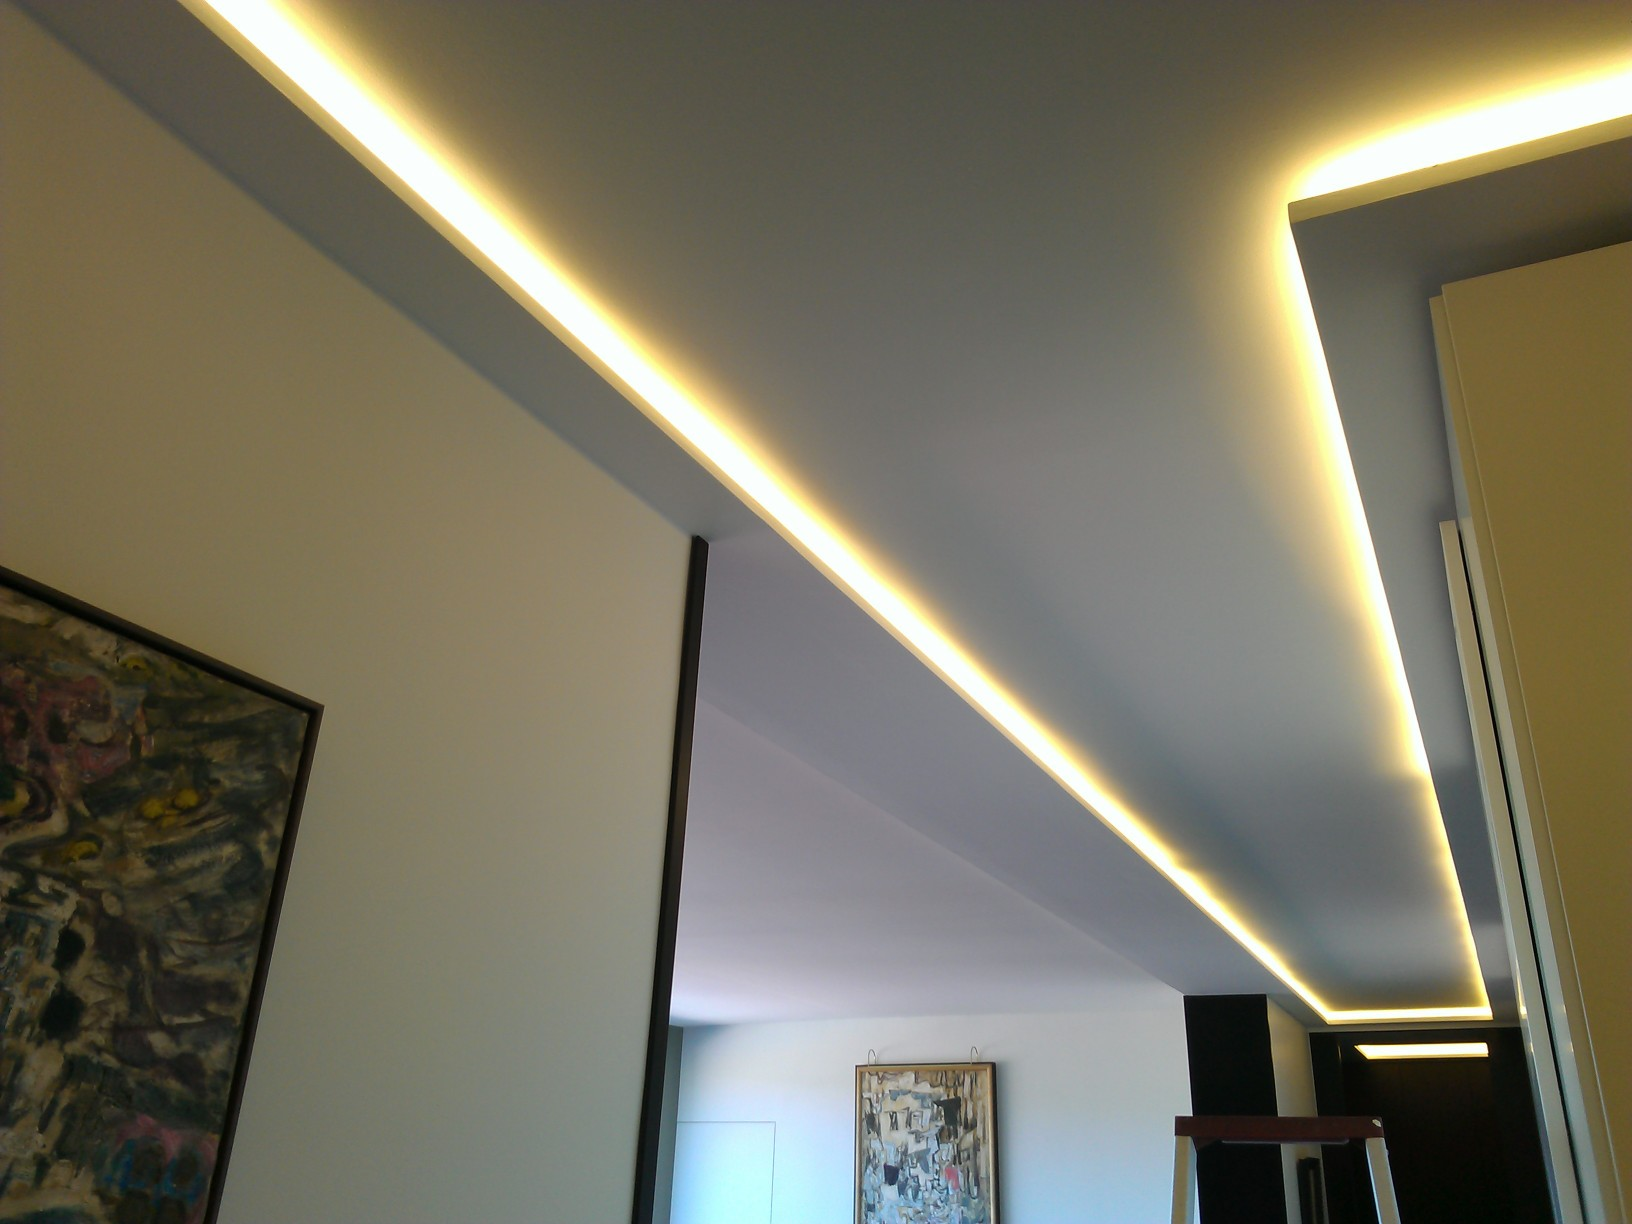 Eclairage led interieur plafond eclairage led plafonds for Led eclairage interieur